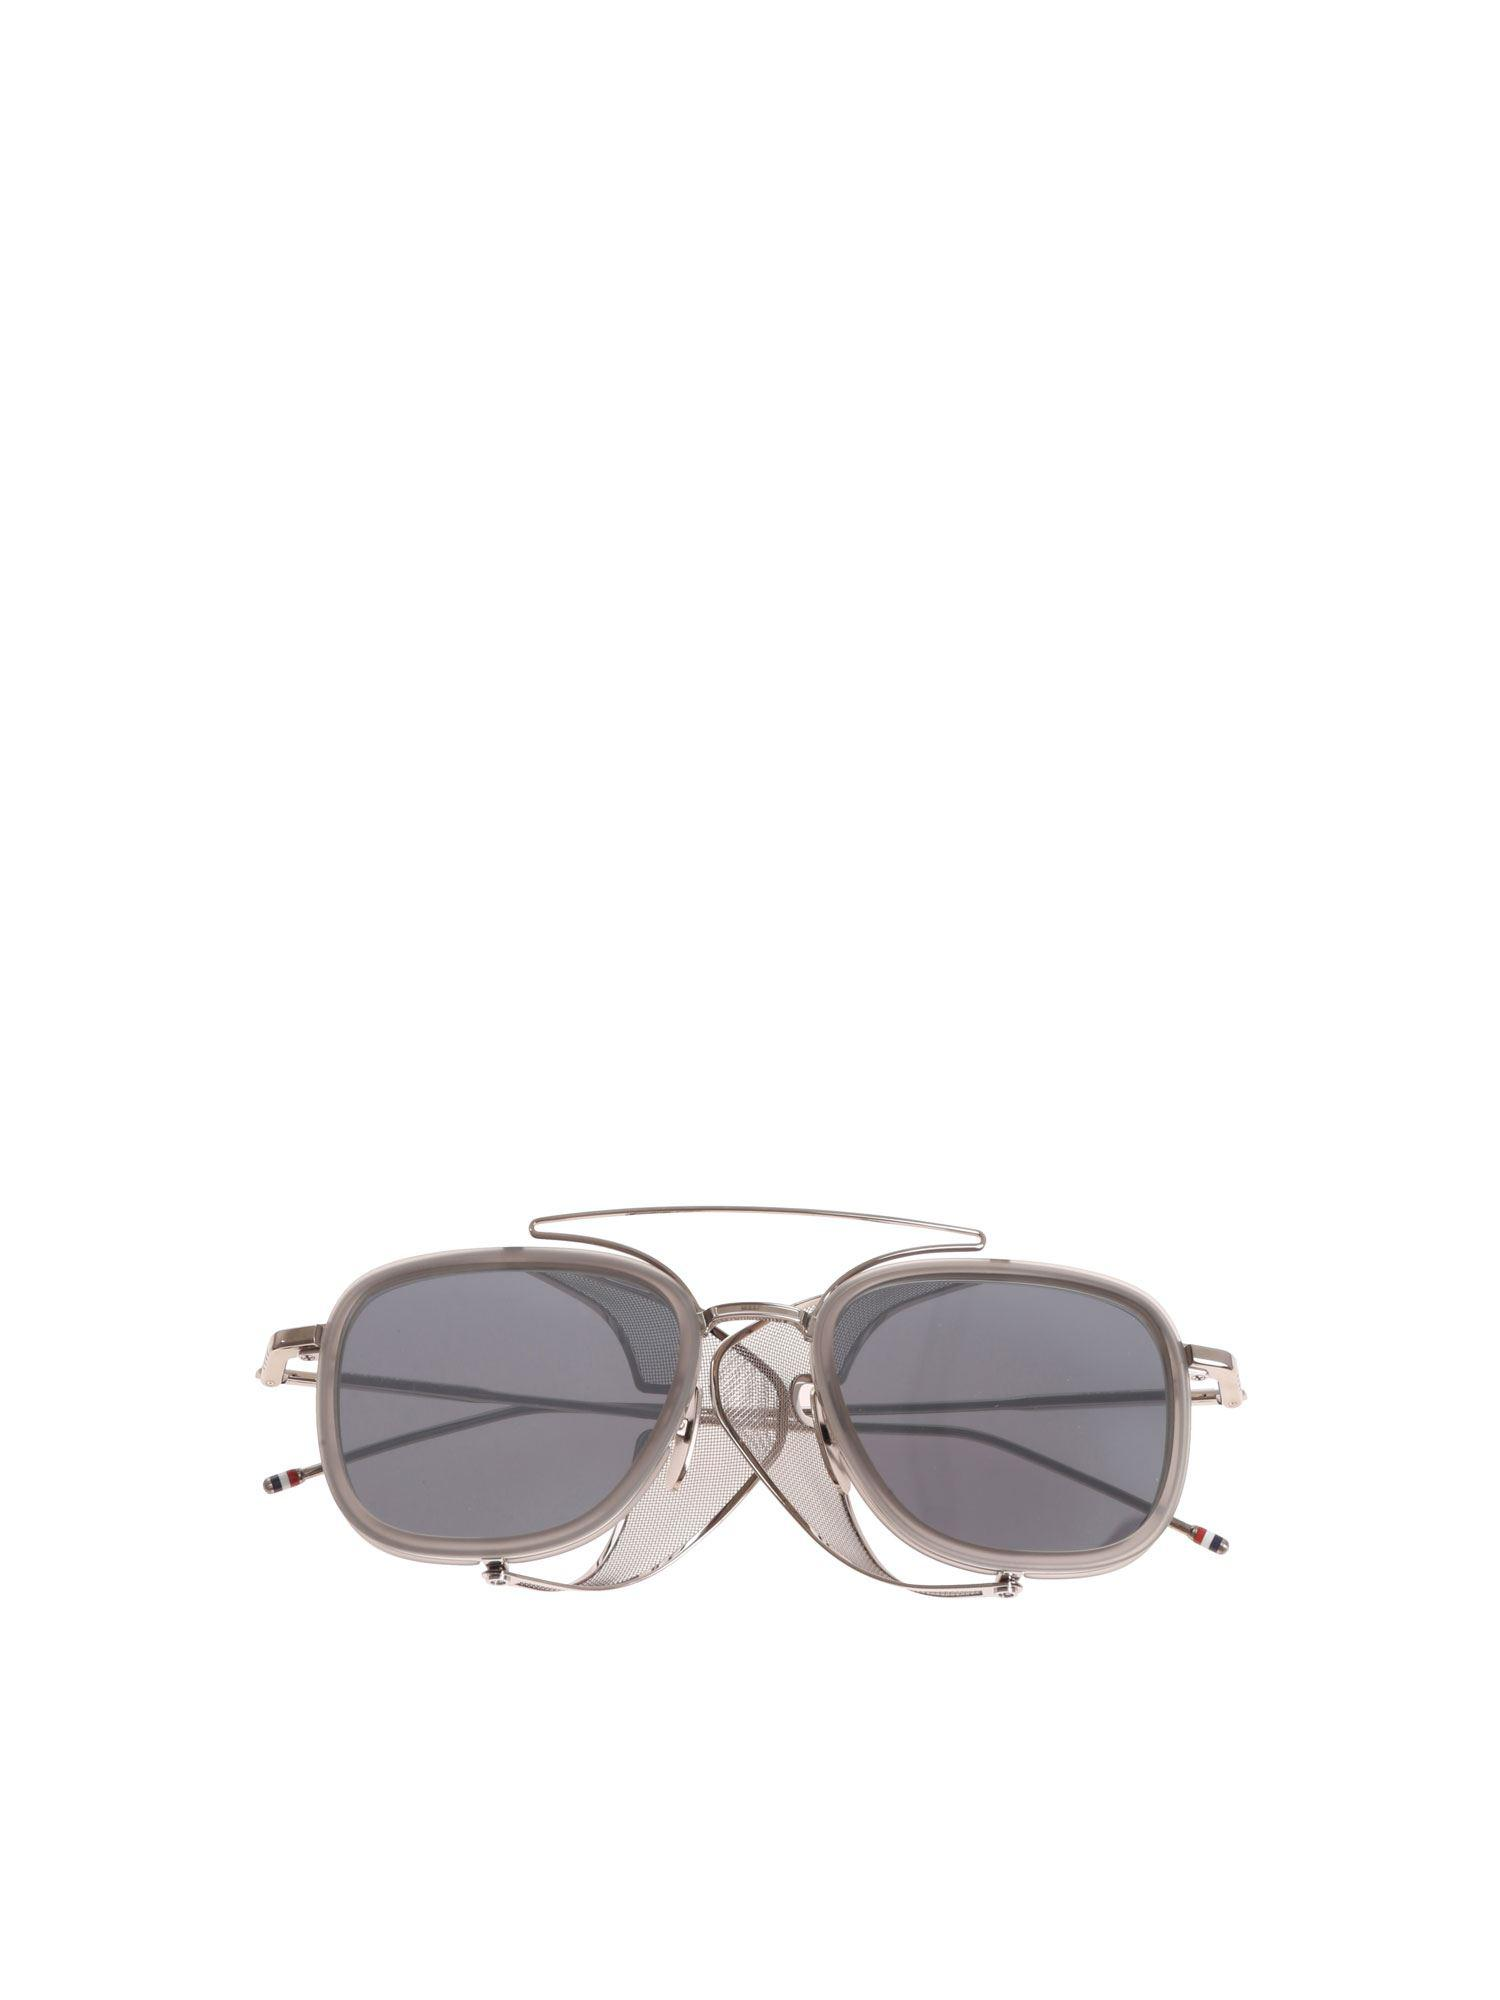 f5188d49a2d Thom Browne Grey Sunglasses With Side Shields in Gray for Men - Lyst